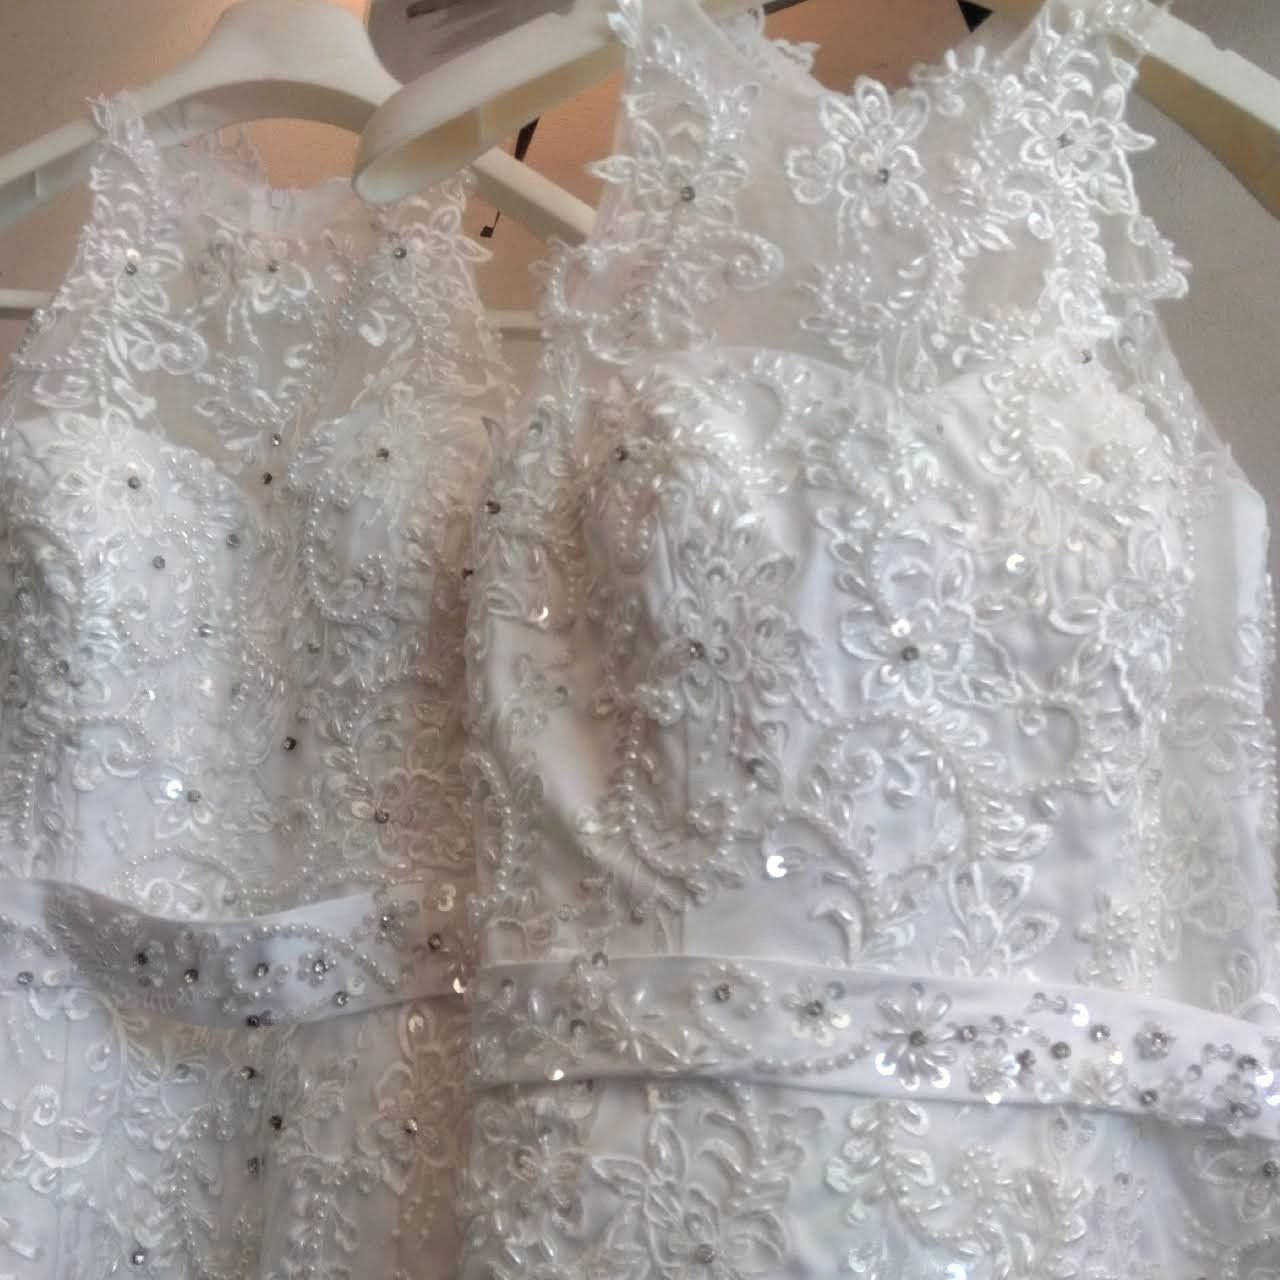 Dry Cleaners Wedding Dress Preservation Unique Dry Cleaners At 19 Albert Street Dry Cleaner I In 2020 Wedding Dress Preservation Clean Wedding Dress Dress Preservation